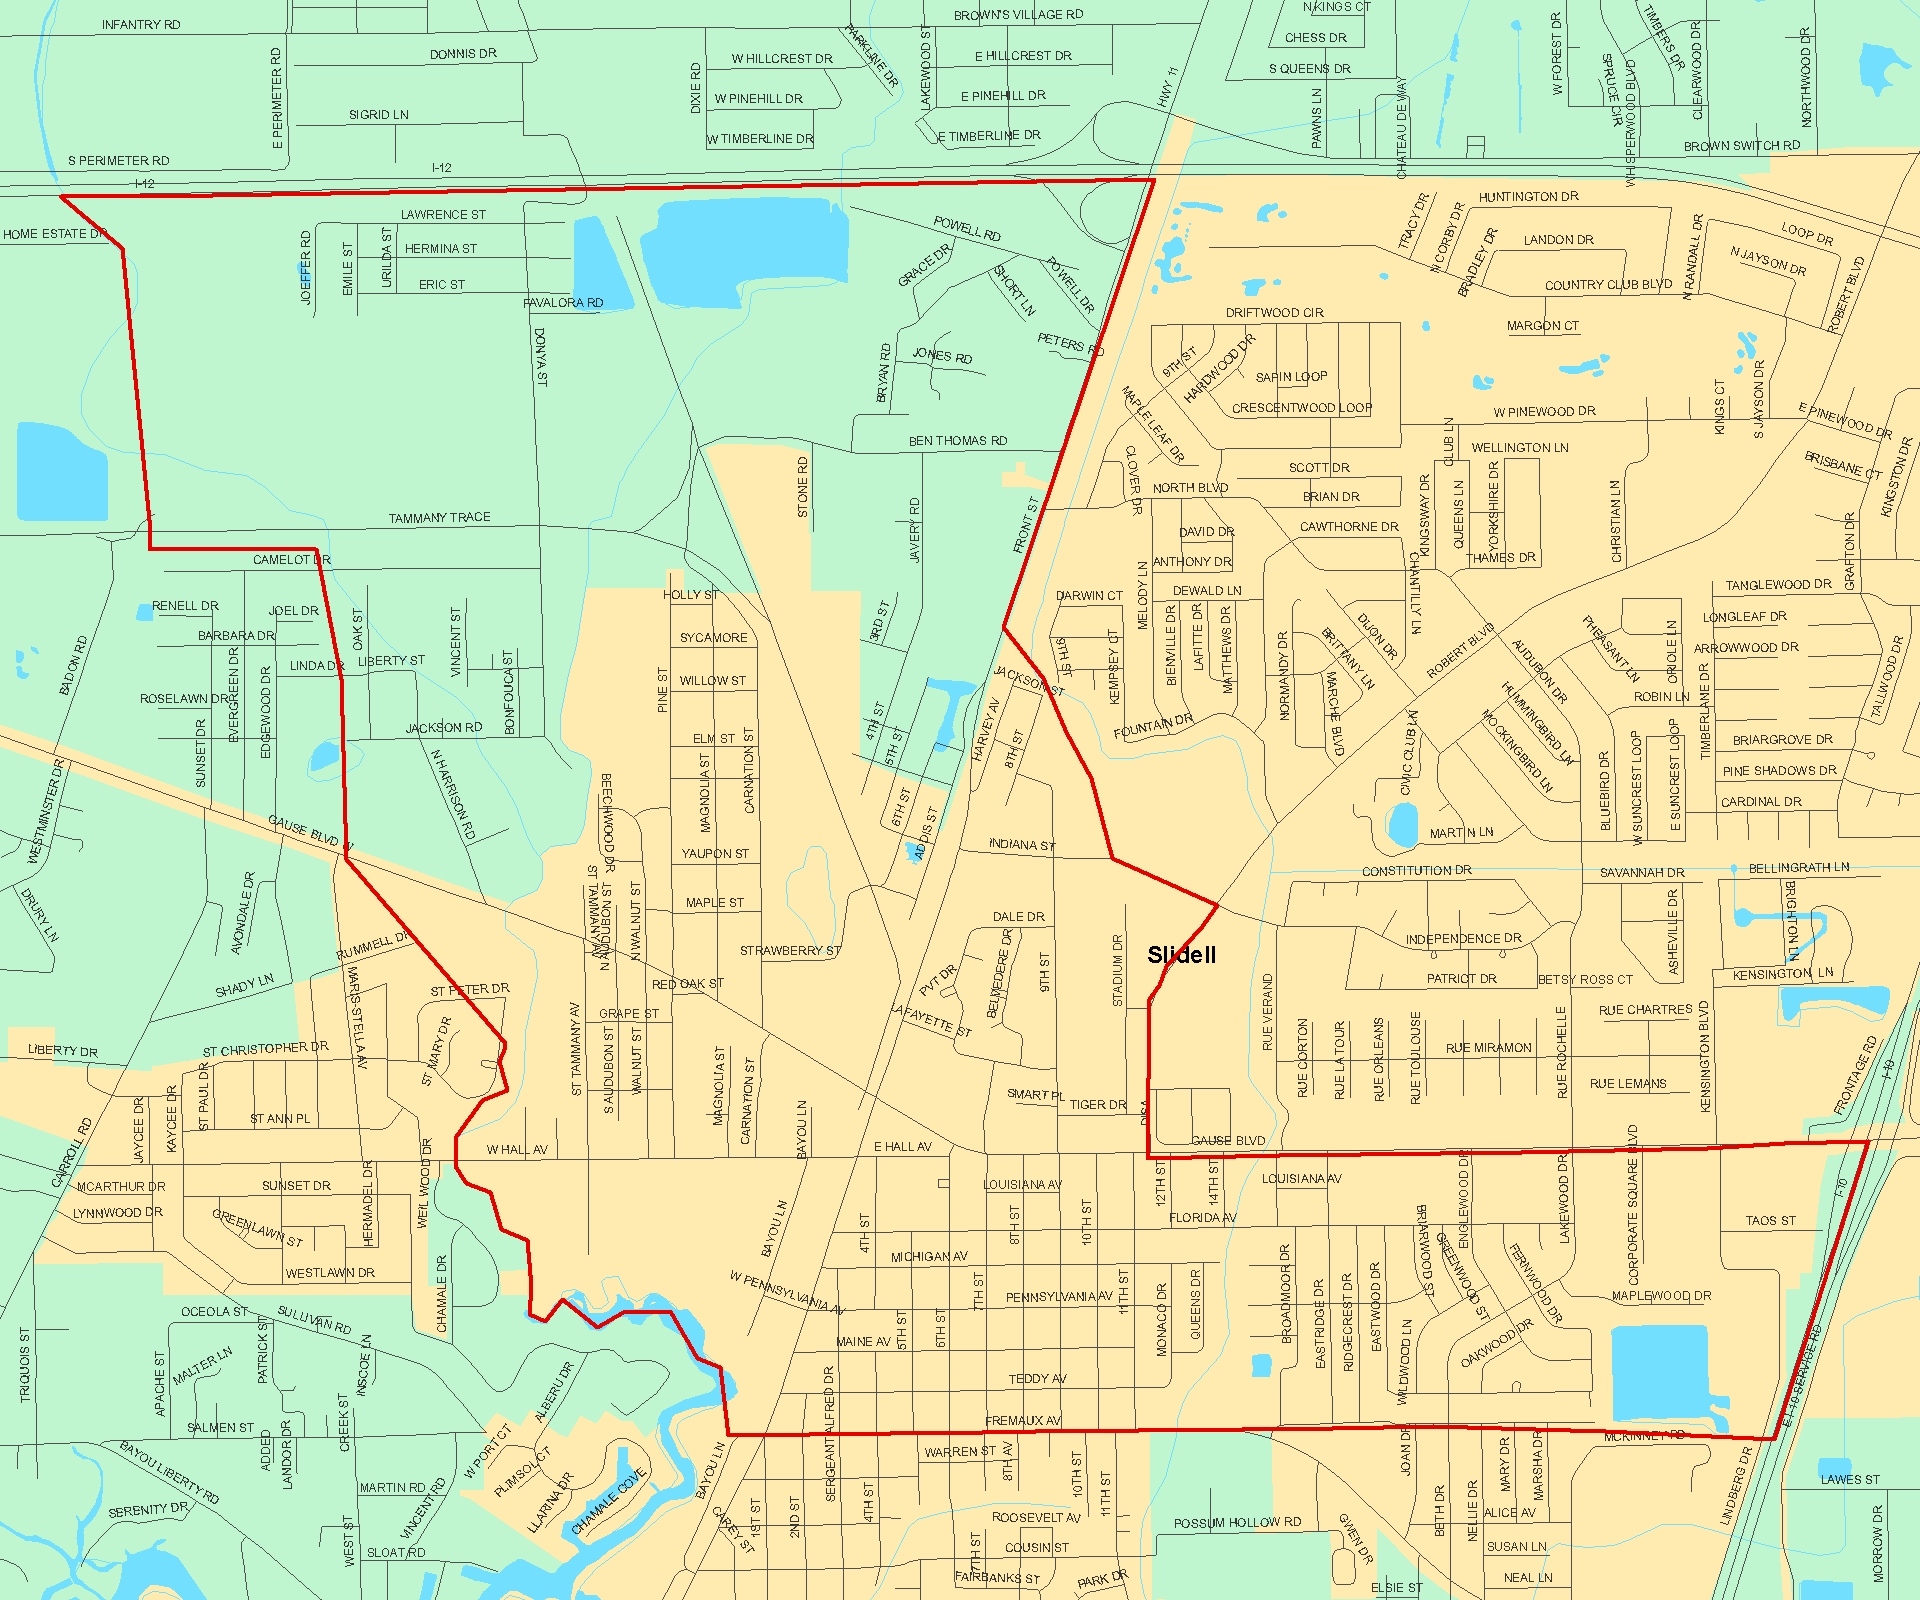 St Tammany School District Maps - The Sibley Group Norths at ... on